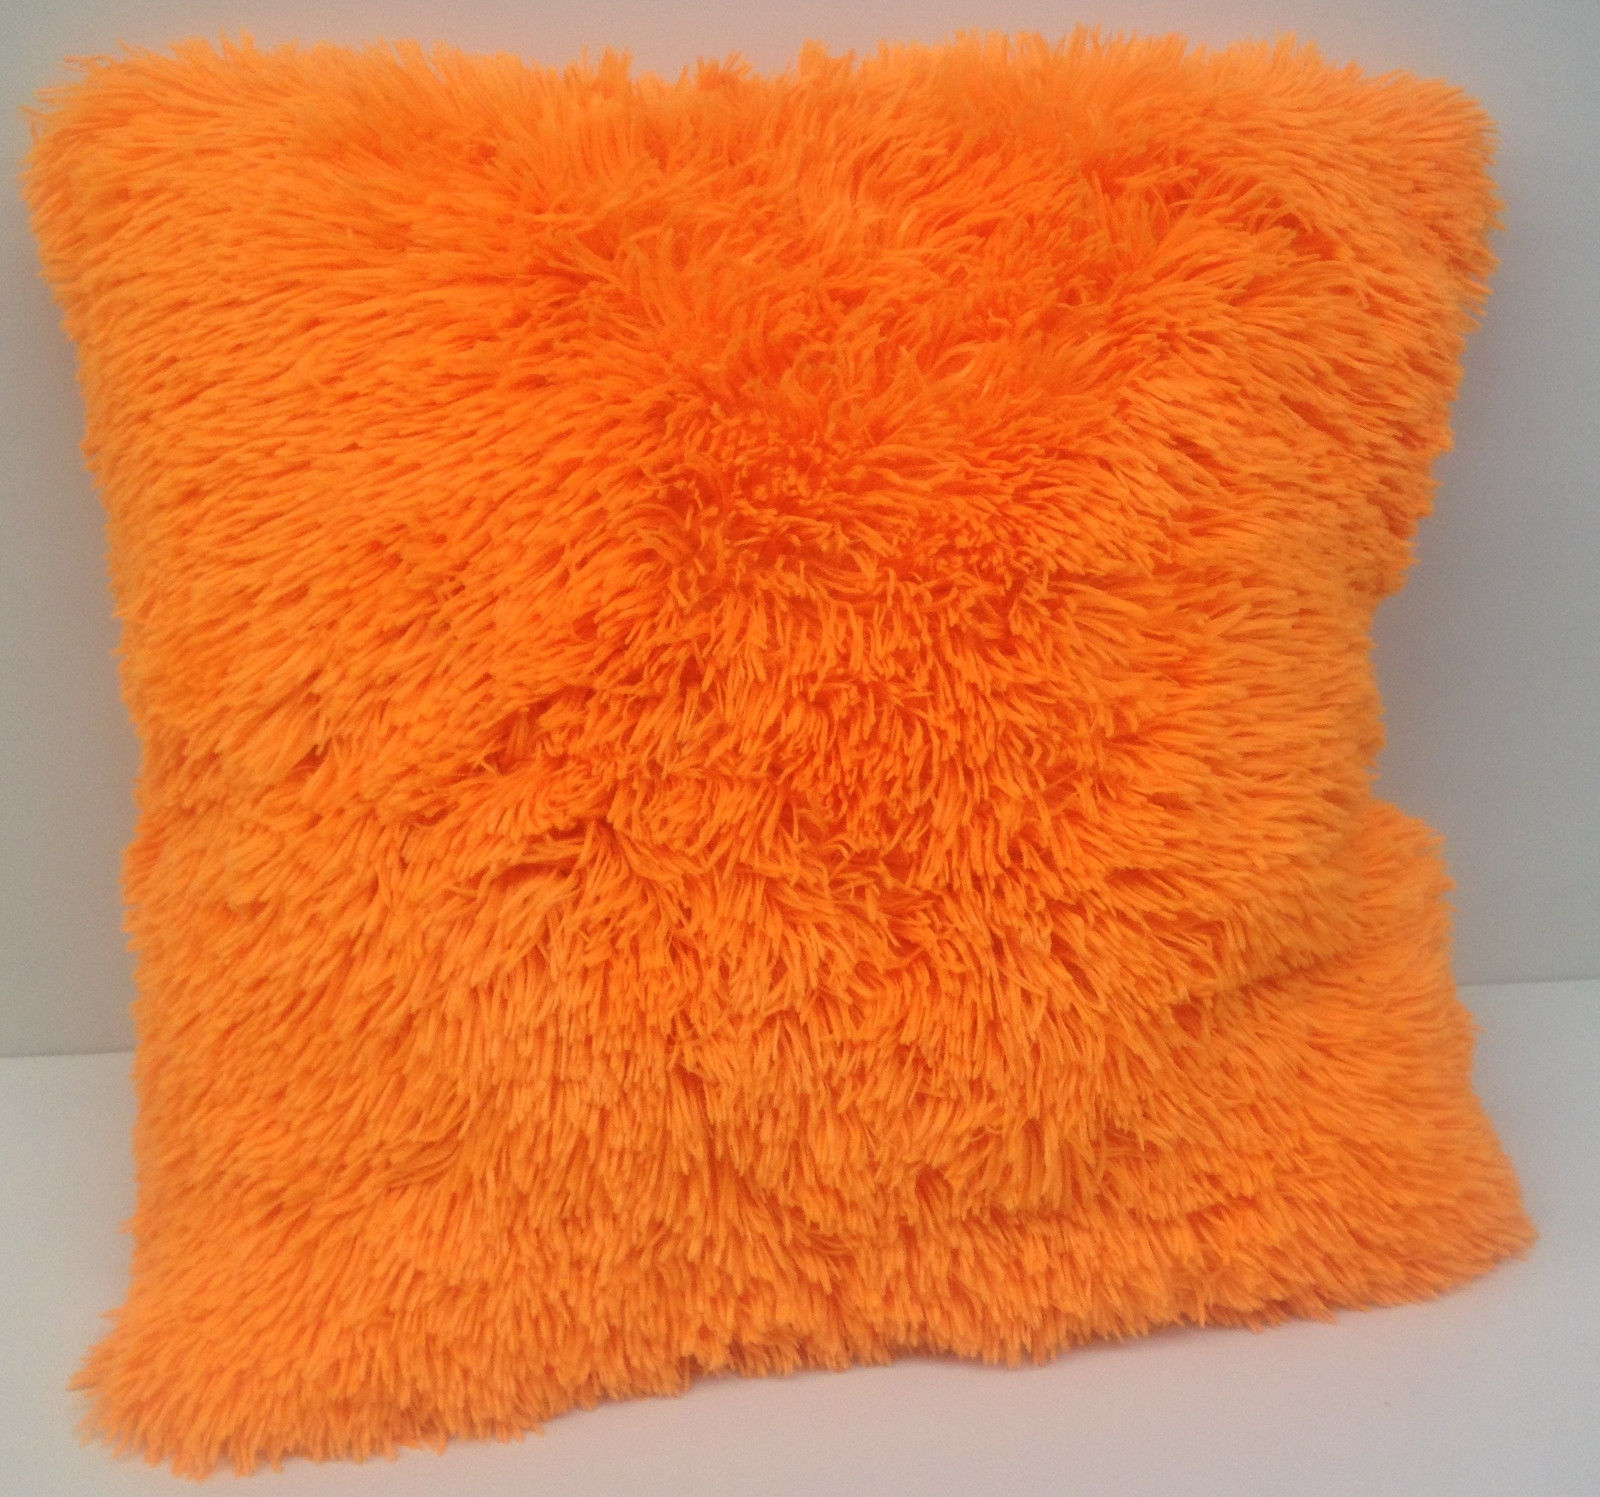 "Set of 2 Large Shaggy Fur Toss Throw Pillows, Neon Orange, 20"" x 20"""